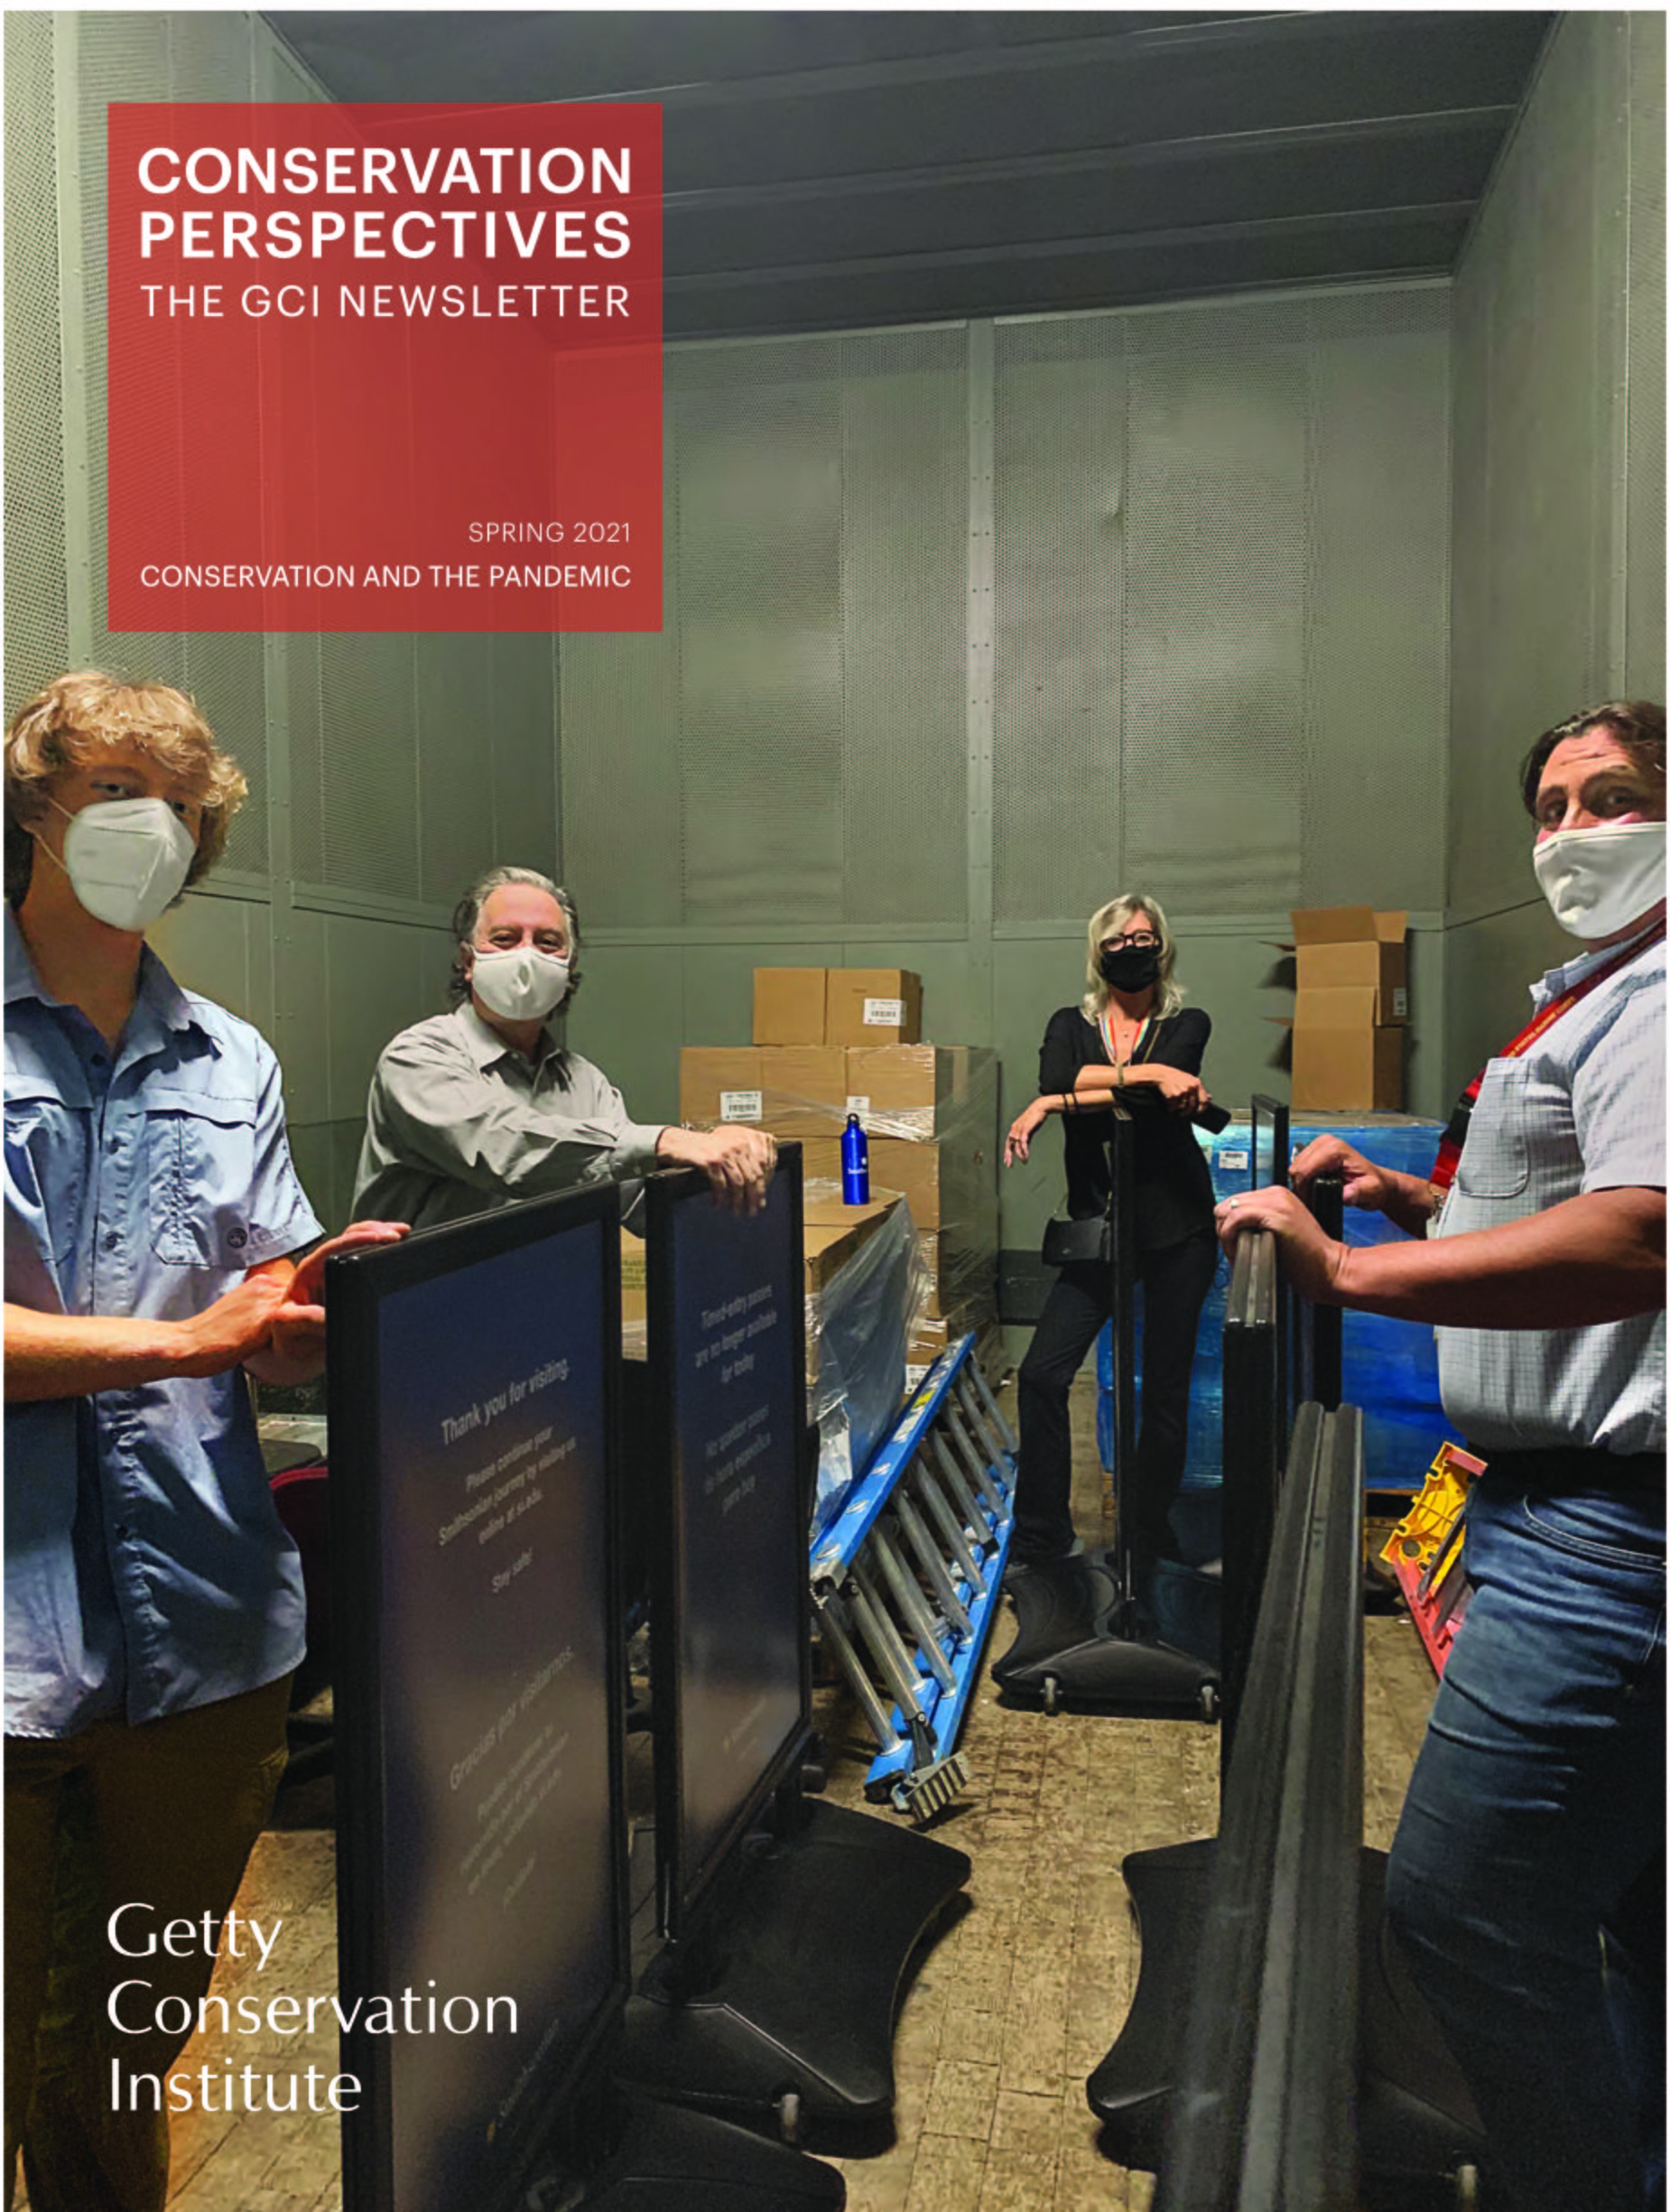 """Cover image of """"Conservation Perspectives"""" Volume 36. Number 1. Spring 2021. Moving signage at the National Museum of American History during the COVID-19 pandemic. Pictured left to right: Langston Swiecki, Pedro Colón, Anthea Hartig, and Stephen Walczak. Photo: Irene Kariampuzha, National Museum of American History."""